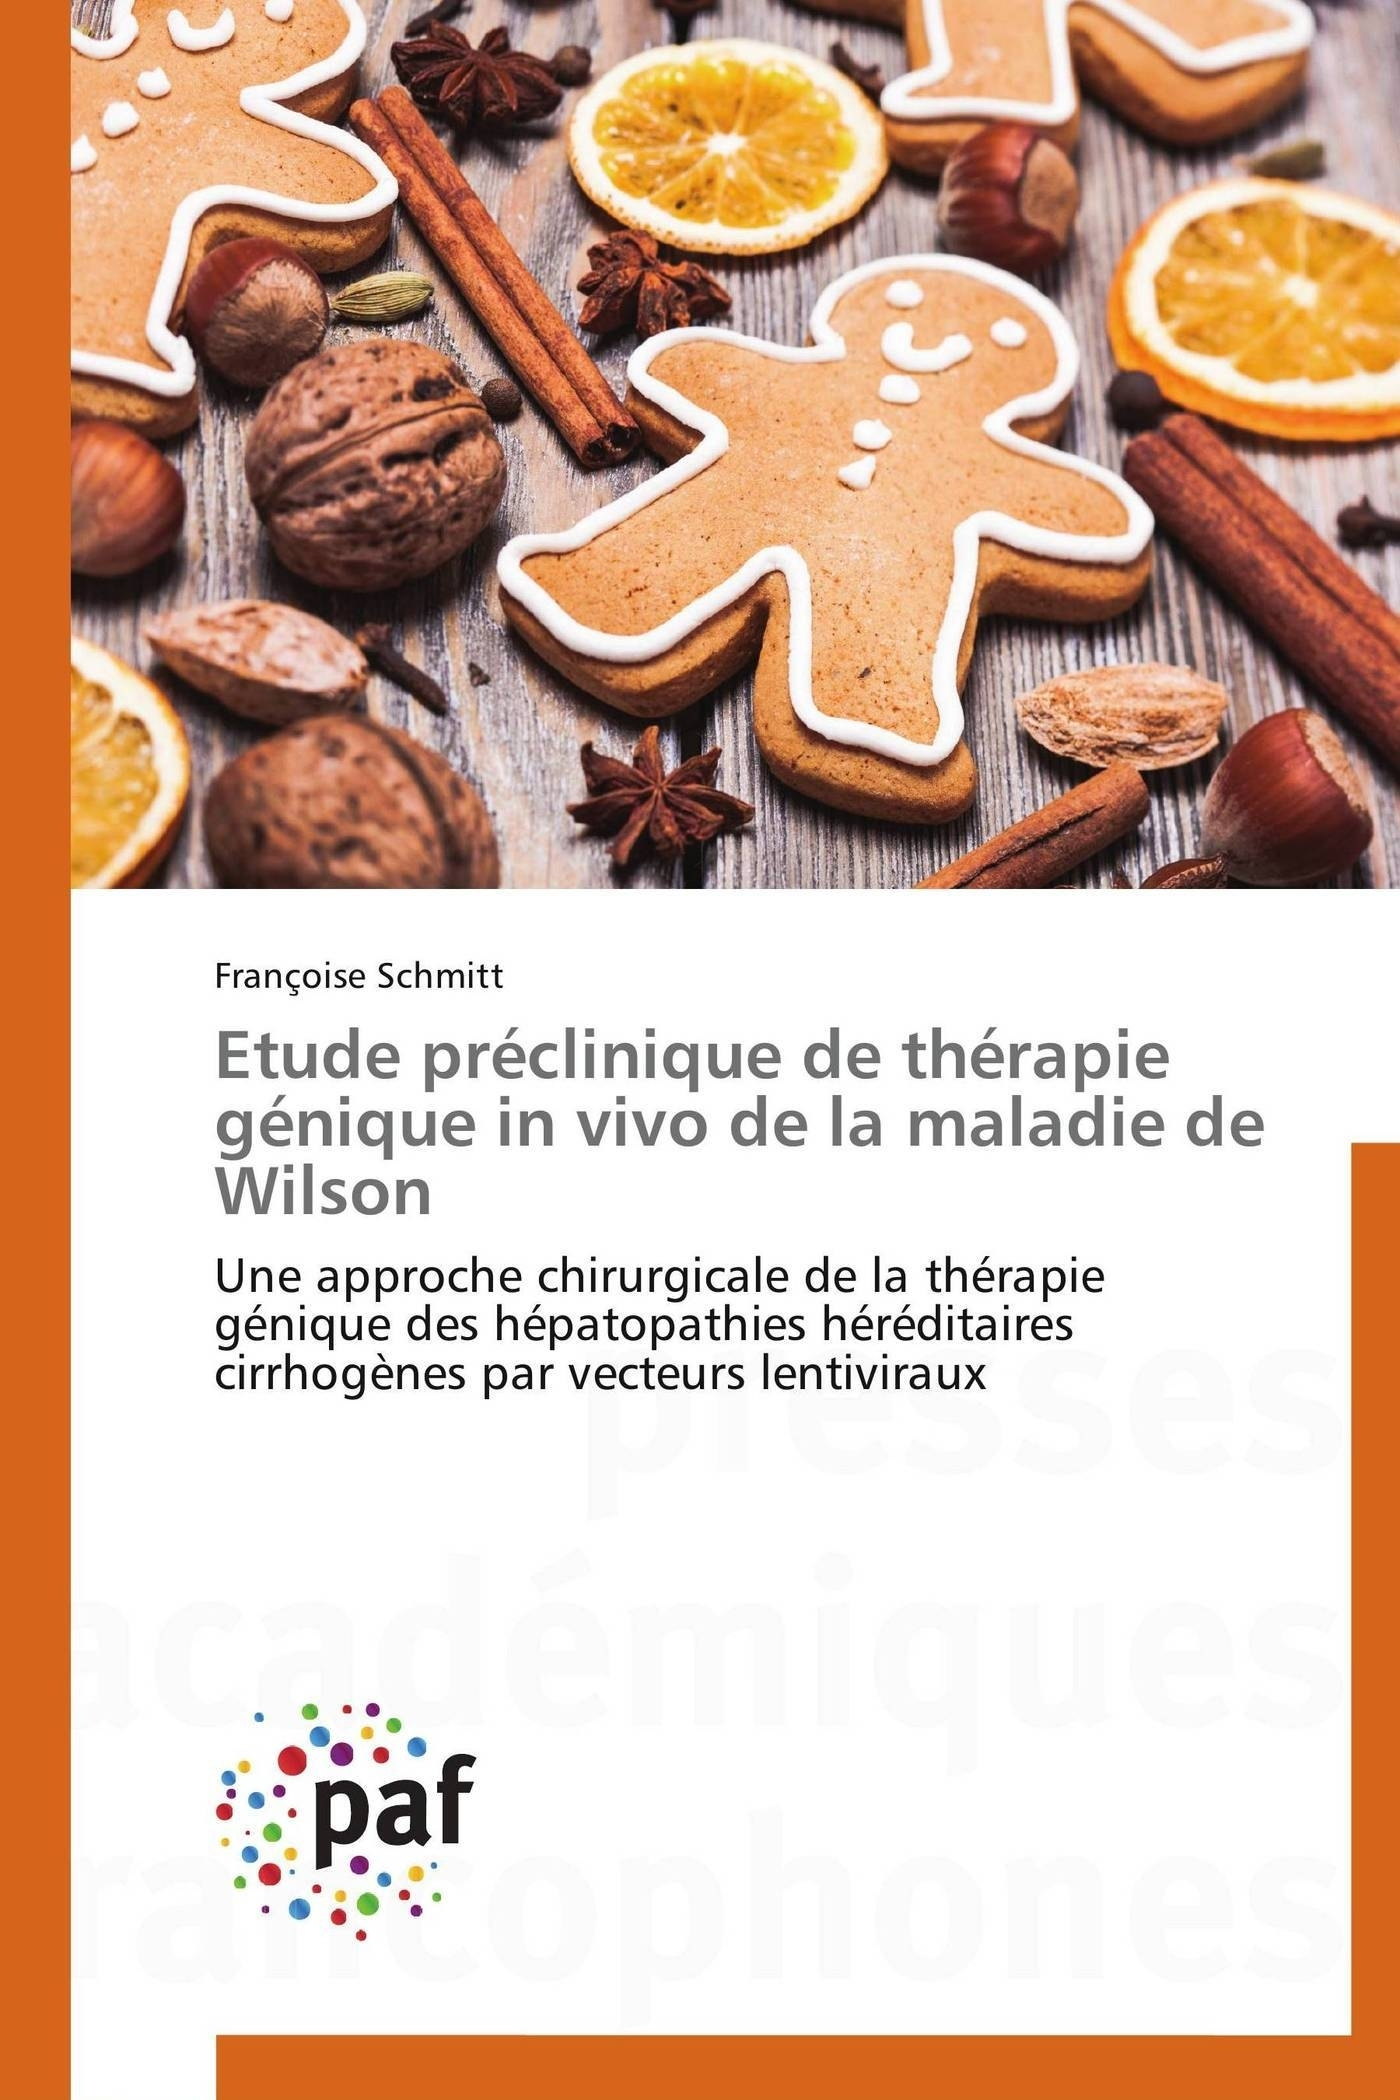 ETUDE PRECLINIQUE DE THERAPIE GENIQUE IN VIVO DE LA MALADIE DE WILSON